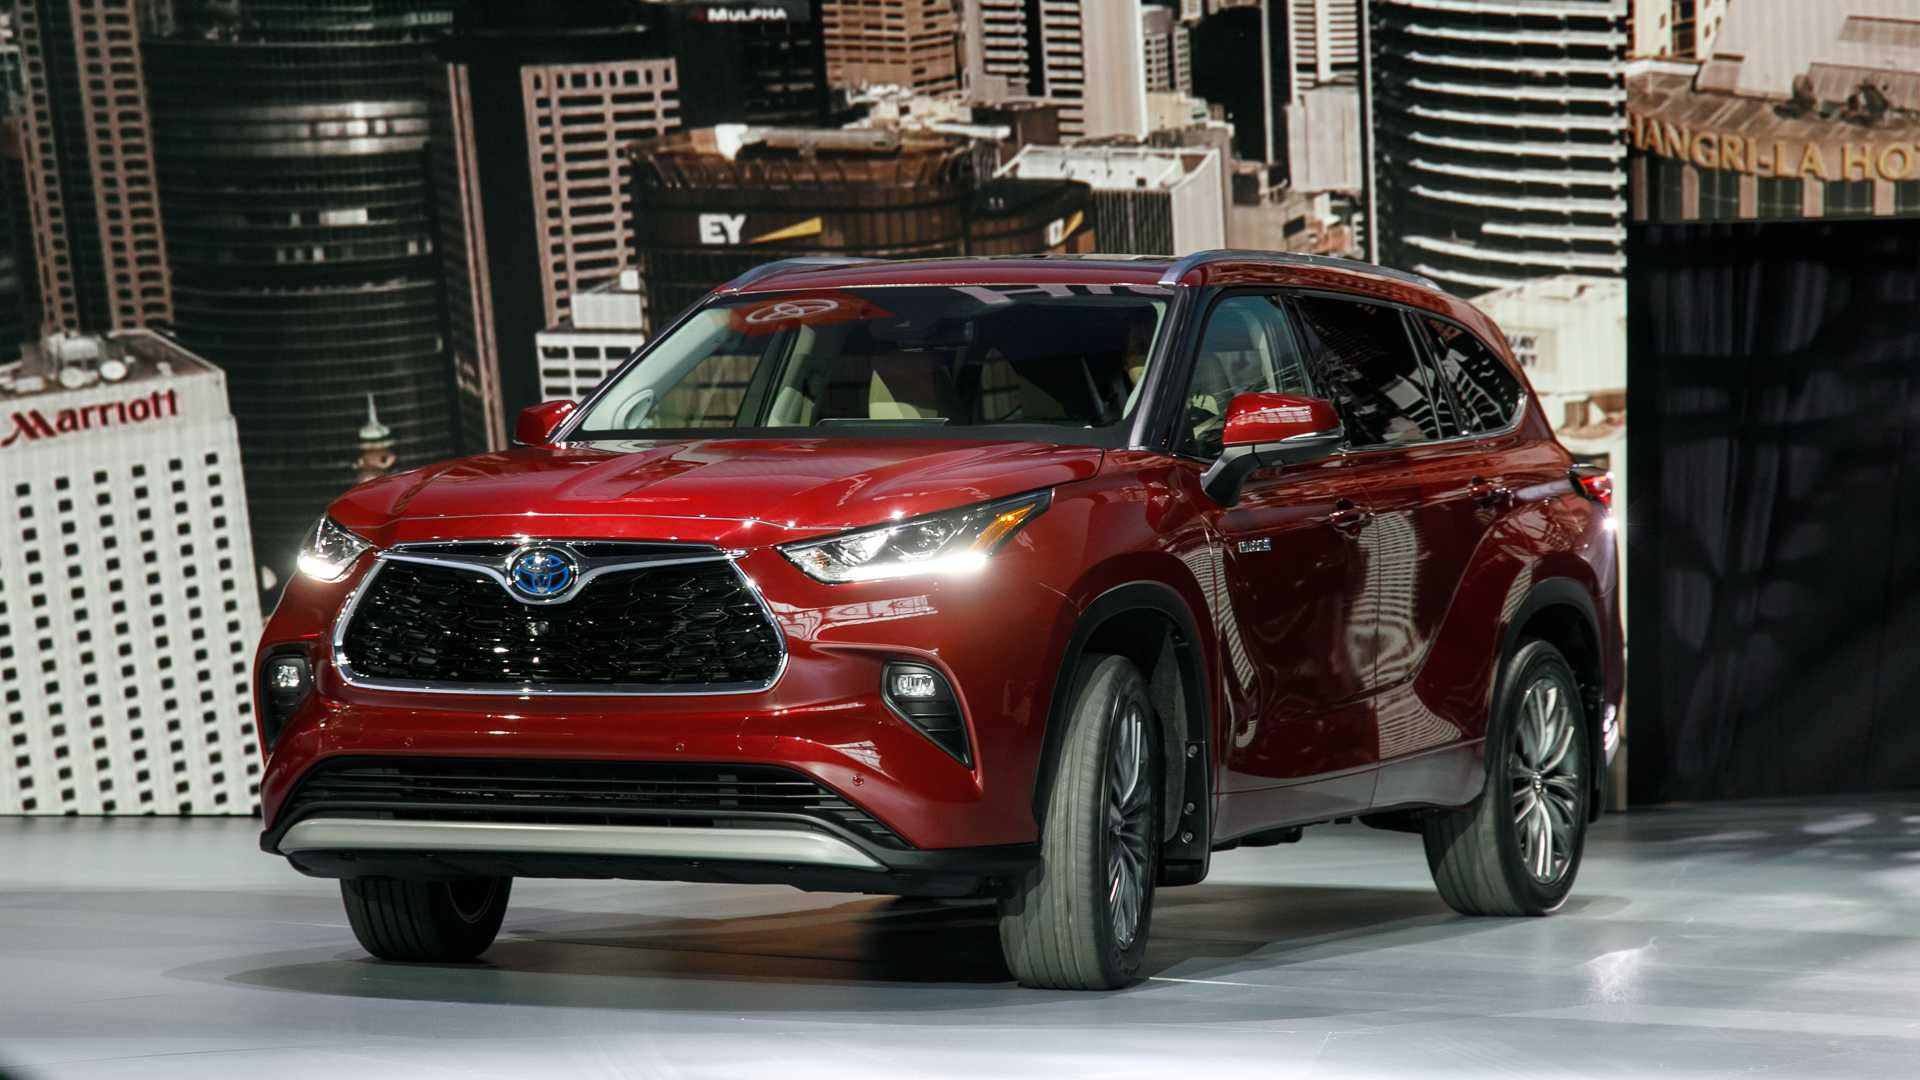 12 All New The Toyota Highlander 2019 Redesign Concept Performance